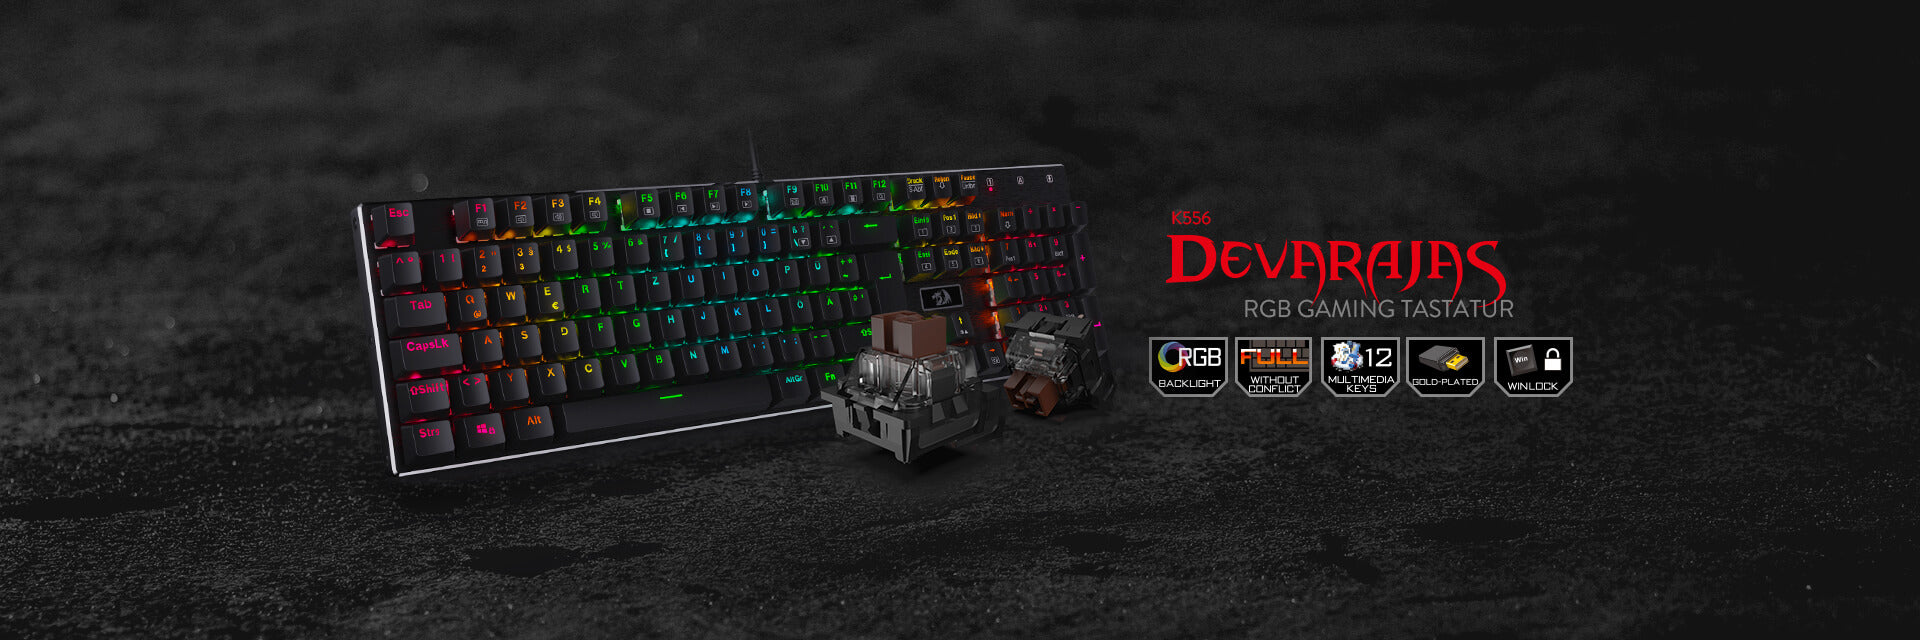 Redragon K556-DE Mechanische Gaming Tastatur